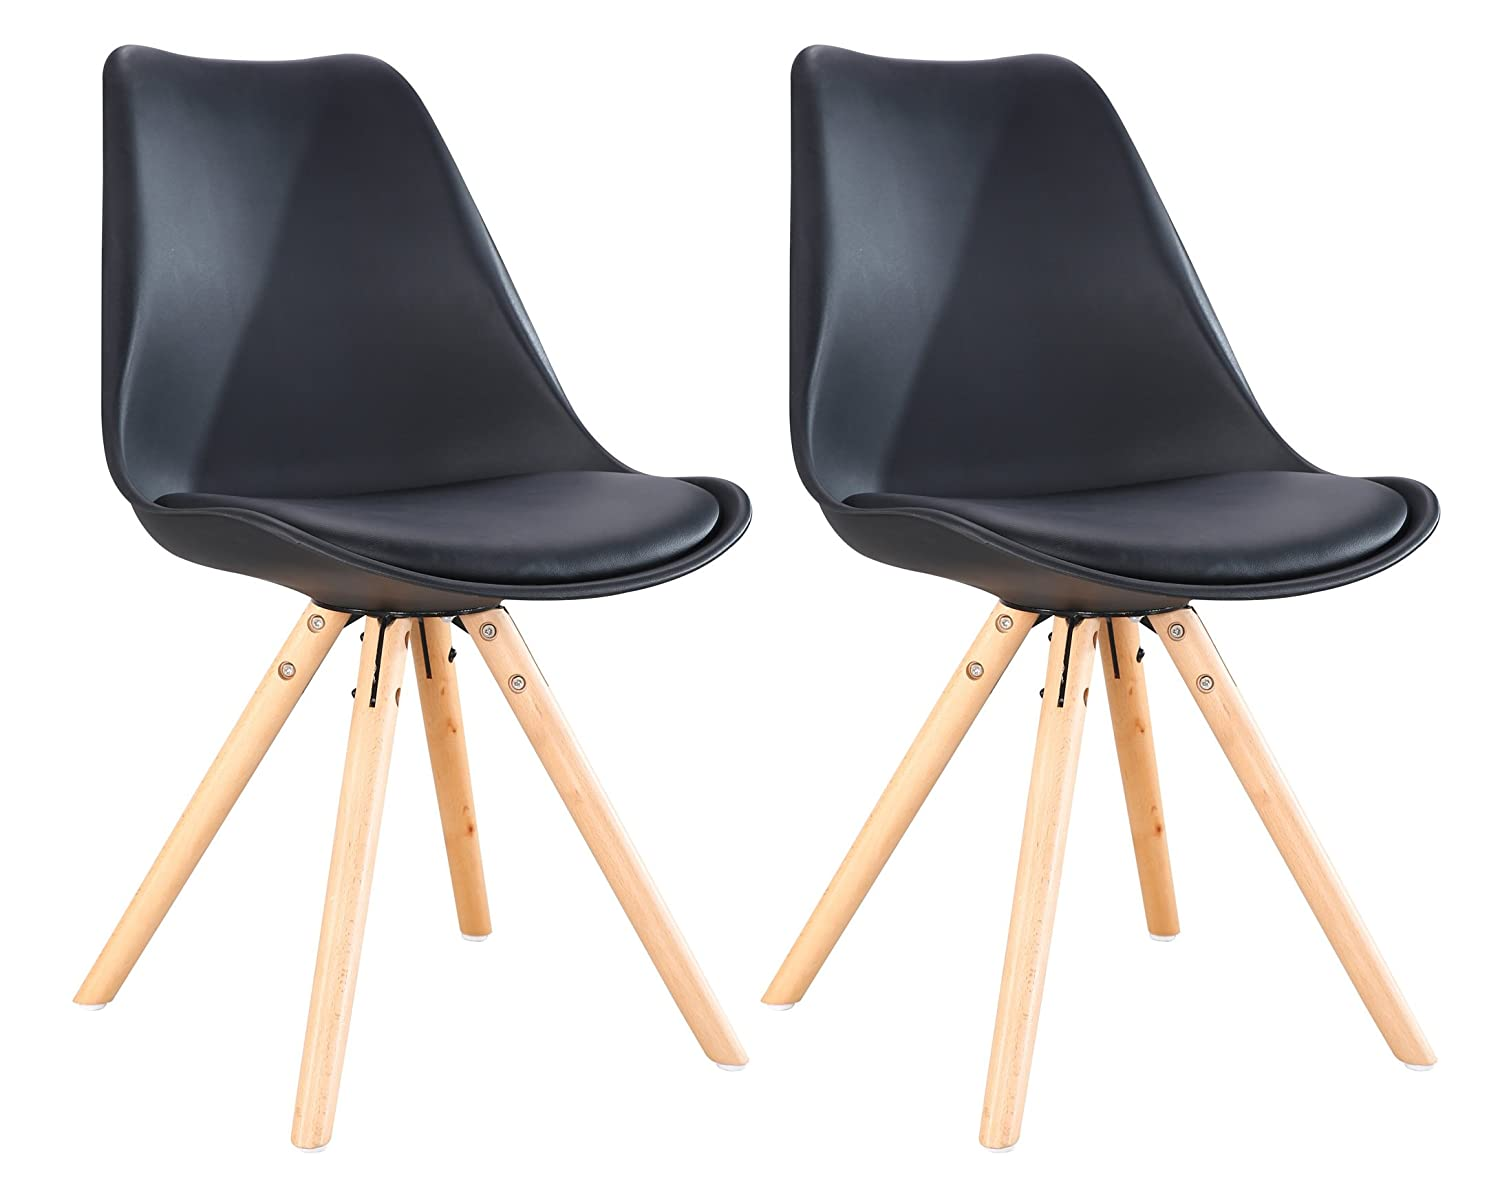 OYE HOYE Retro Dining Chairs/Office Chairs - Set of 2 Chairs for Bedrooms Living Room with Wood Leg, Soft Padded Seat & Durable - Black SEASONAL WALKS